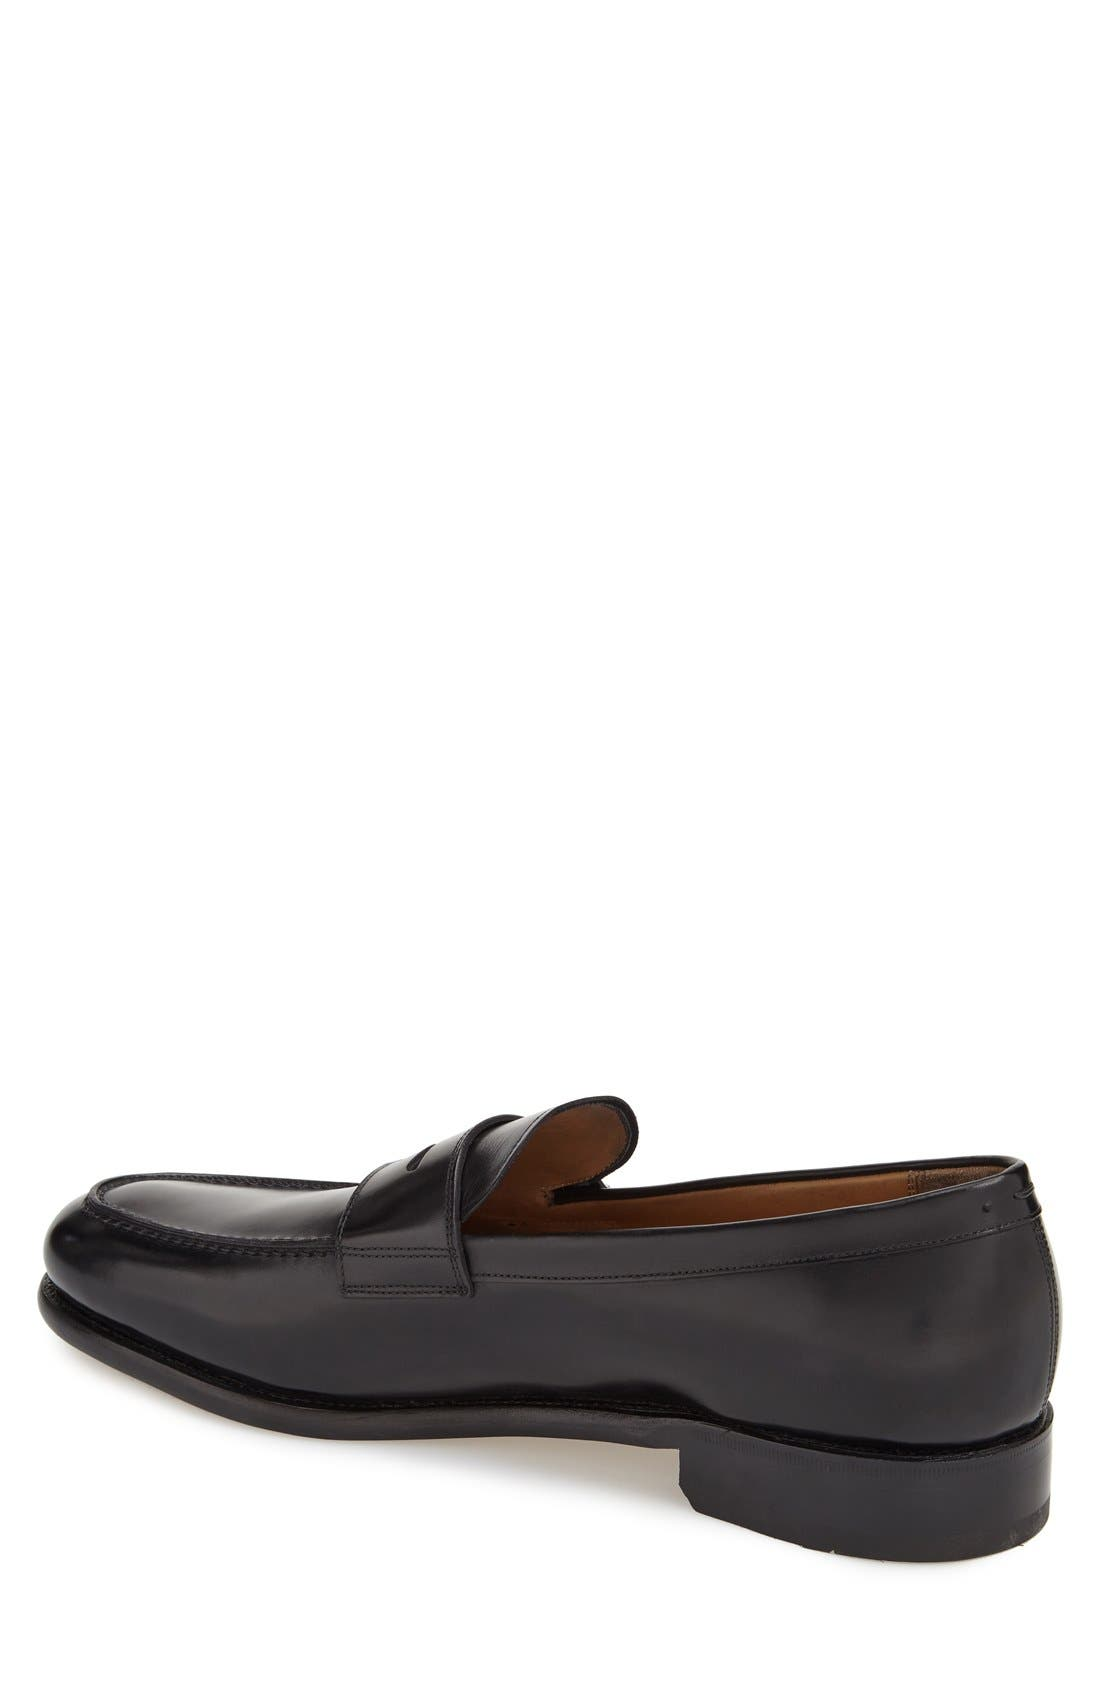 'Rinaldo' Penny Loafer,                             Alternate thumbnail 2, color,                             Nero Leather